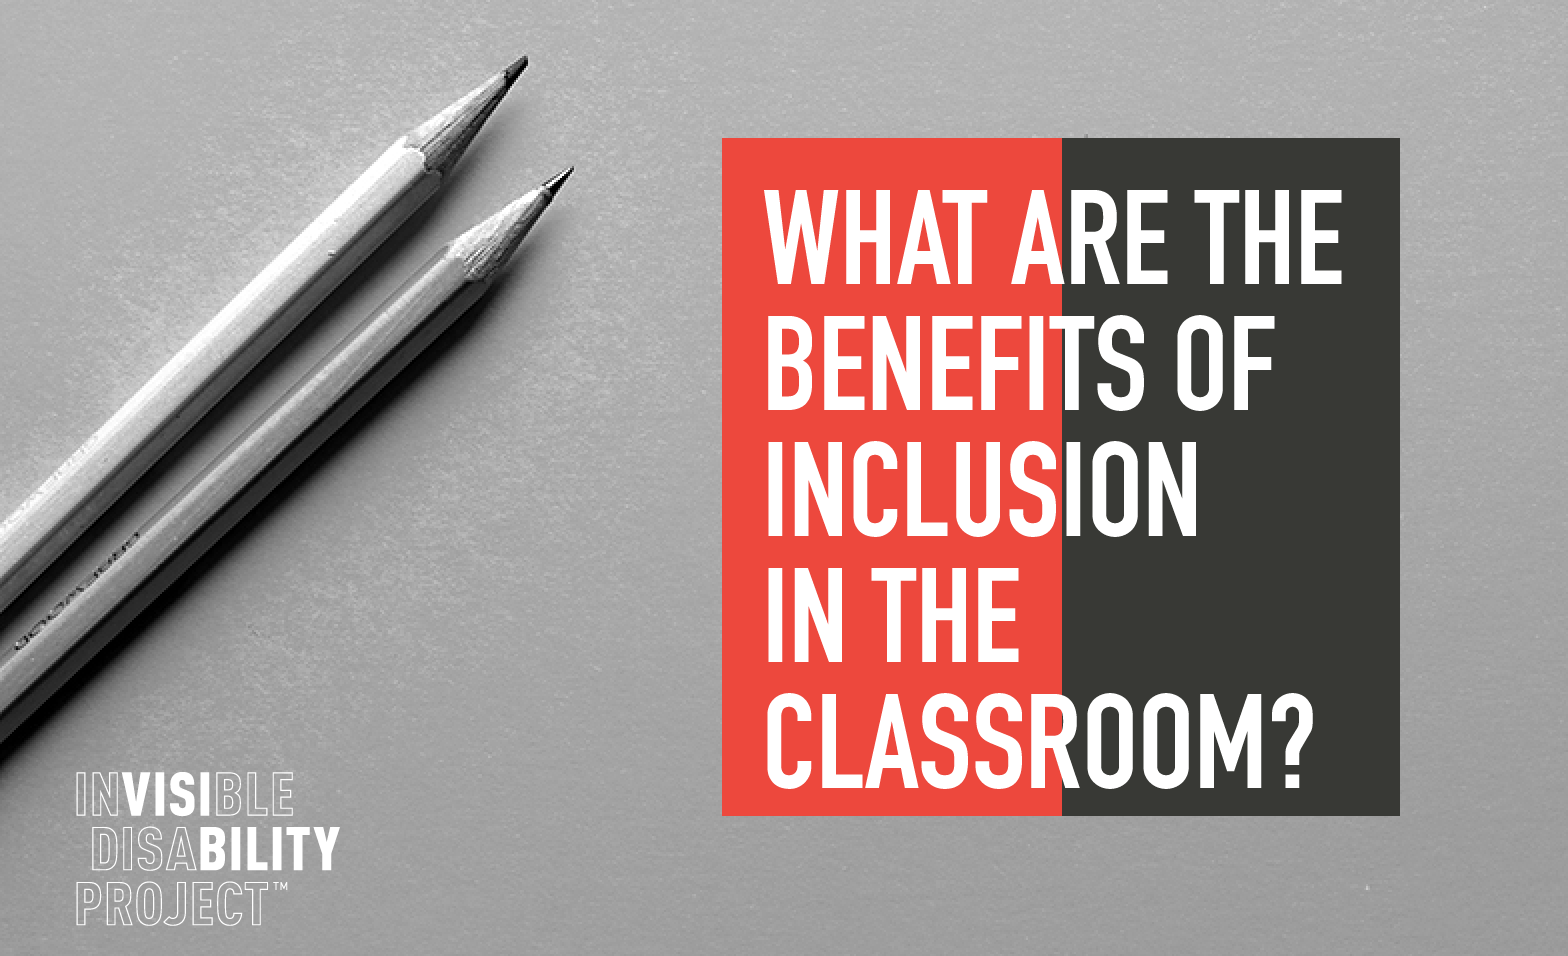 What are the benefits of inclusion in the classroom?